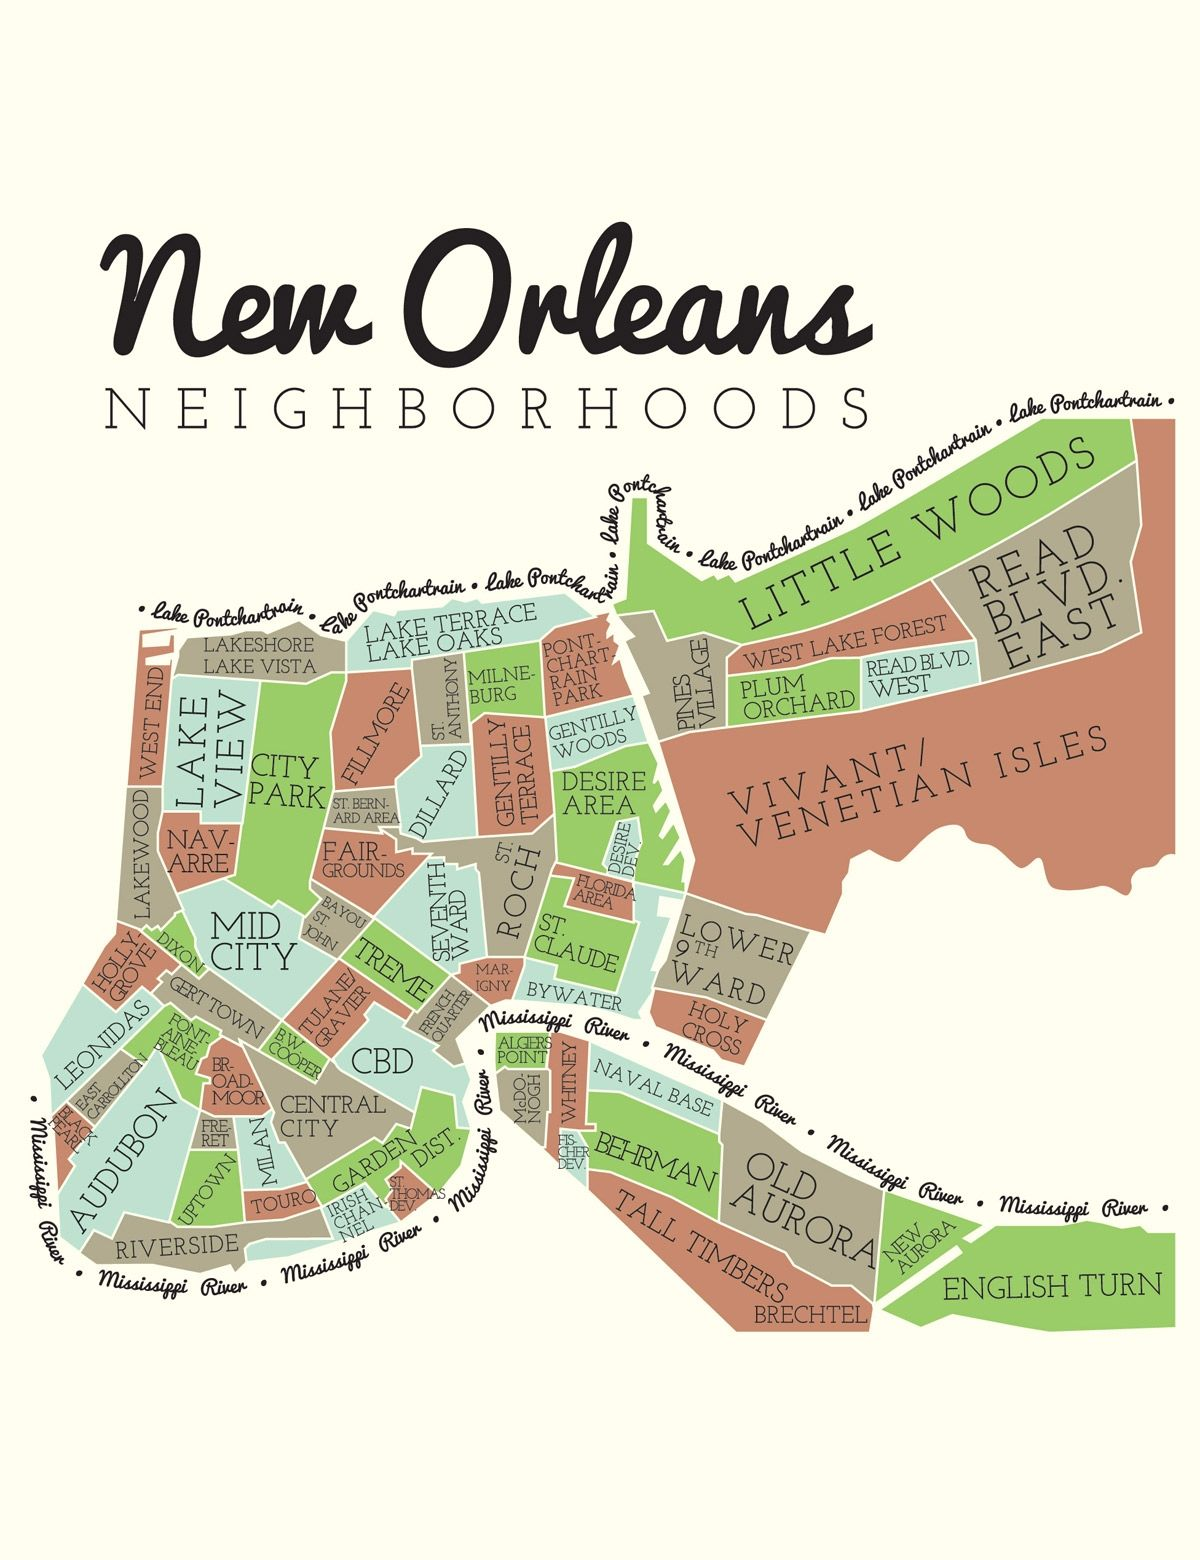 Map Of New Orleans Neighborhoods Stores: Nadeau   Furniture With a Soul in 2019 | Scenery and